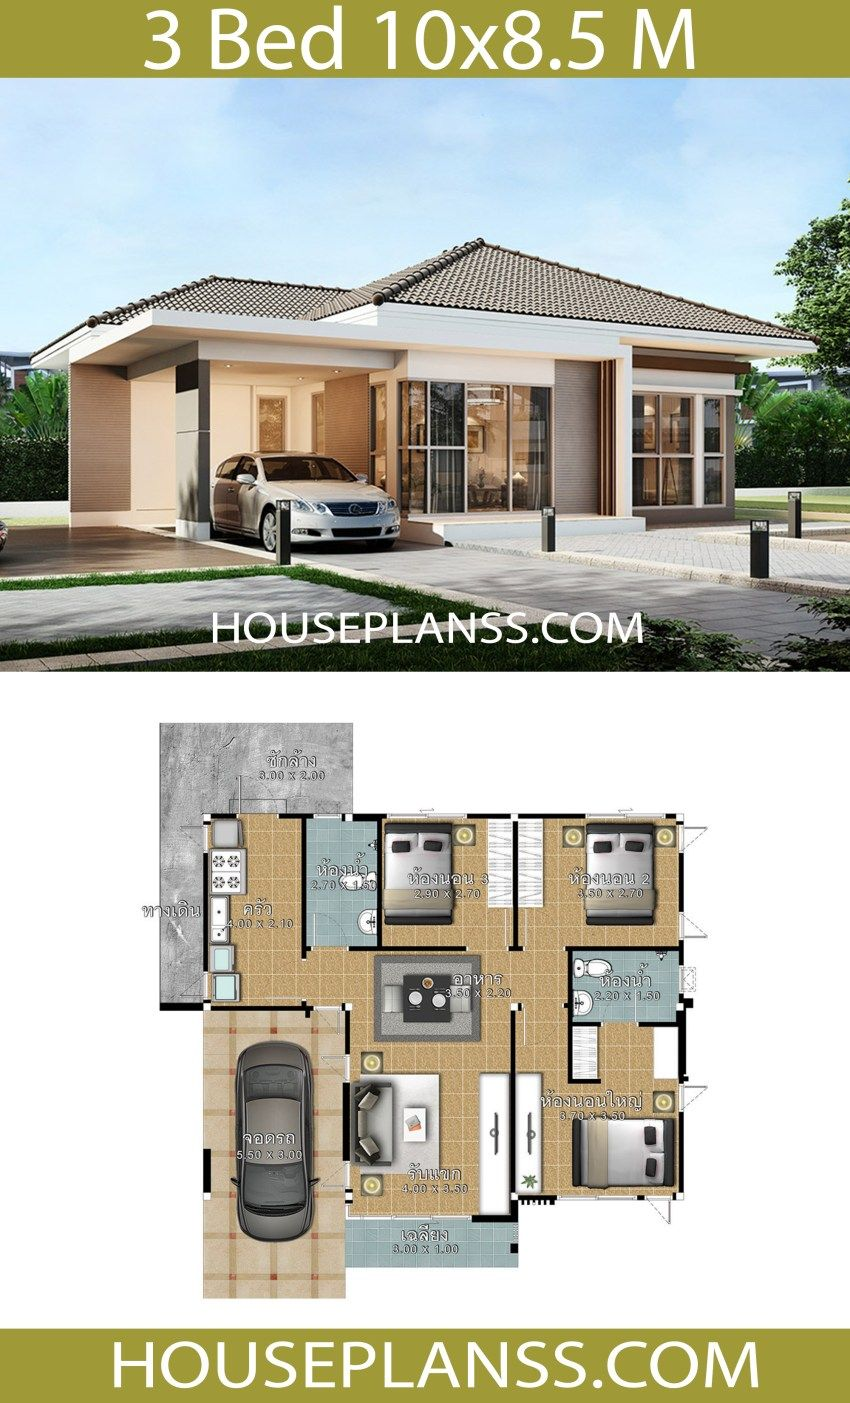 House Plans Idea 10x8 5 With 3 Bedrooms House Plans 3d Small House Layout Modern Bungalow House House Layouts